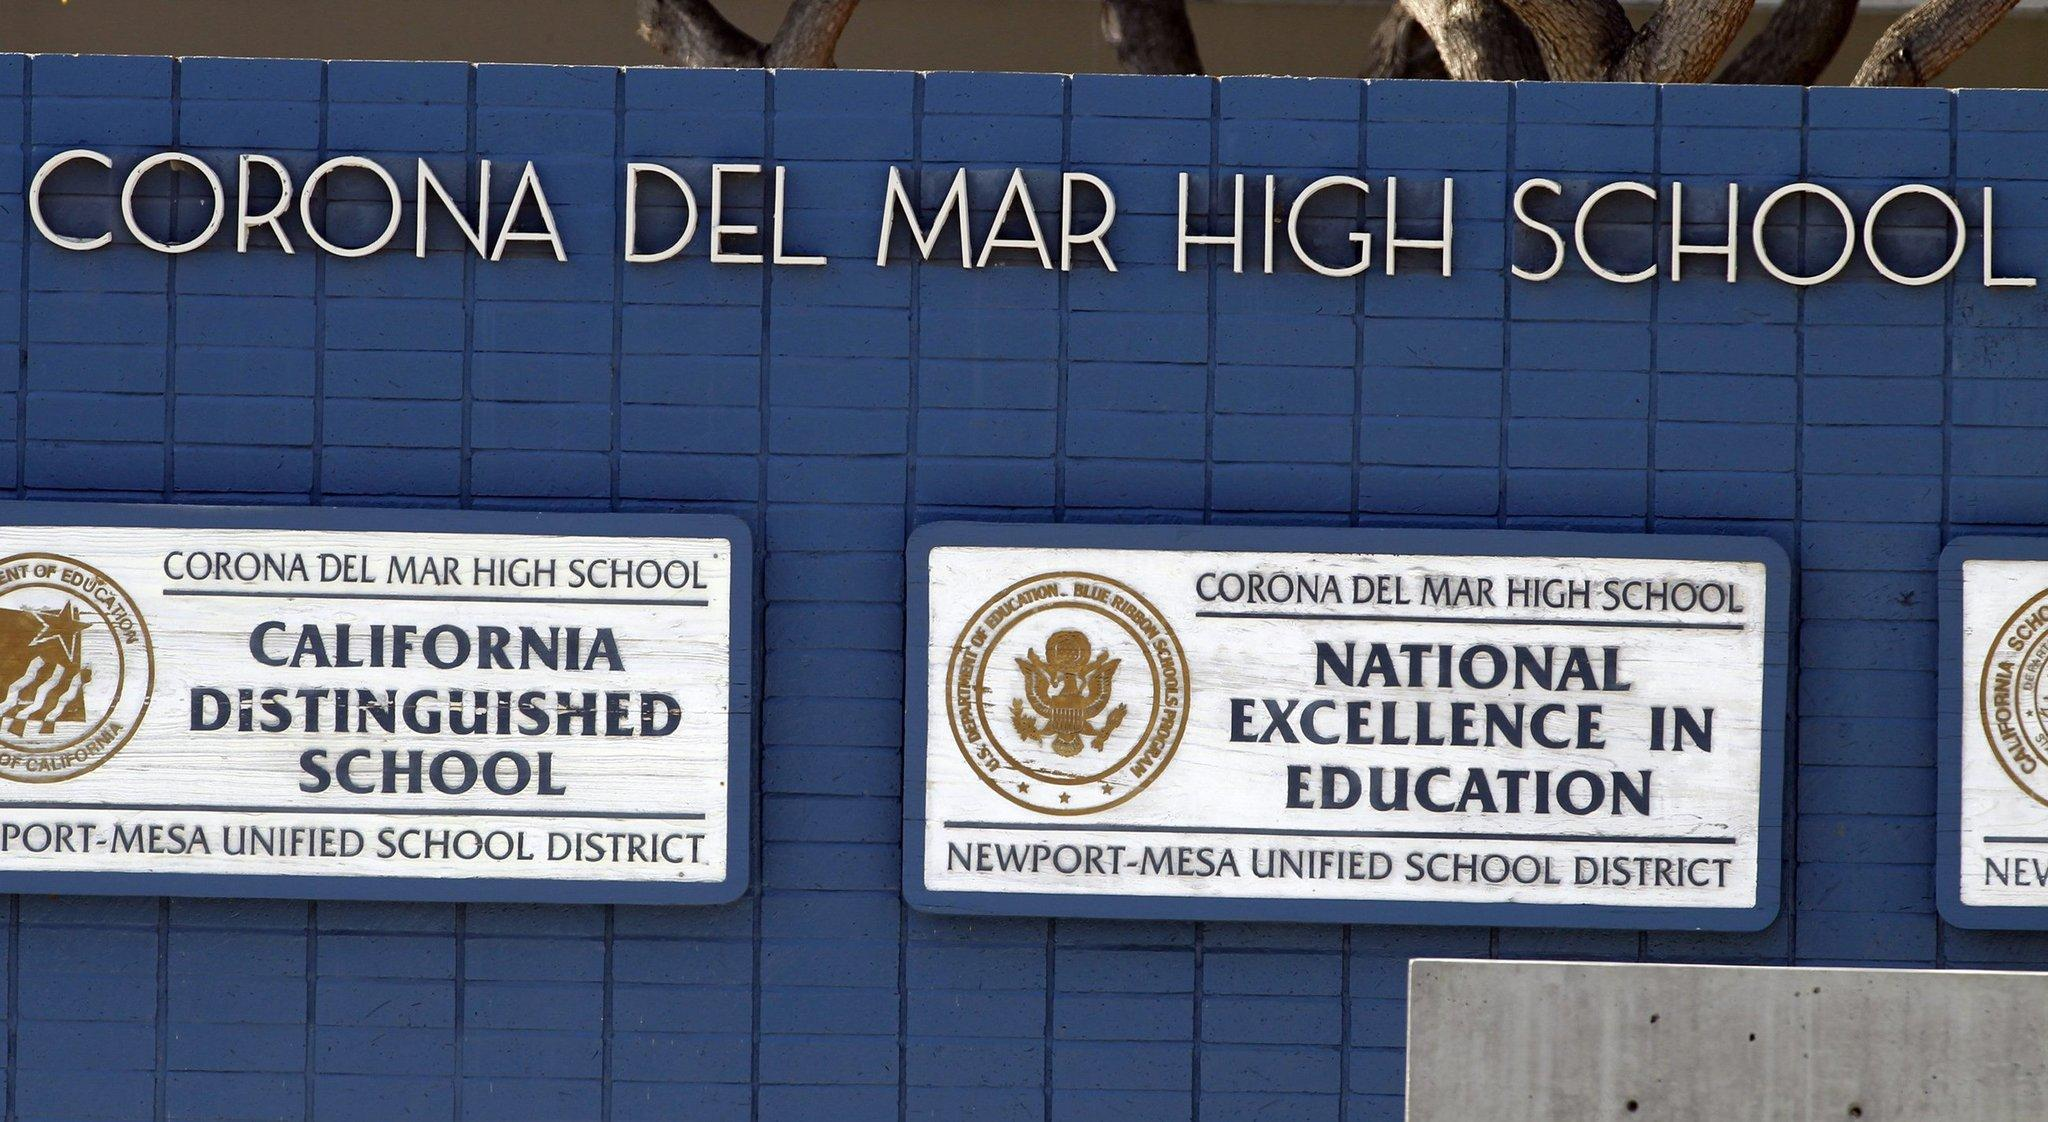 Eleven students at Corona del Mar High School were expelled in a cheating scandal.